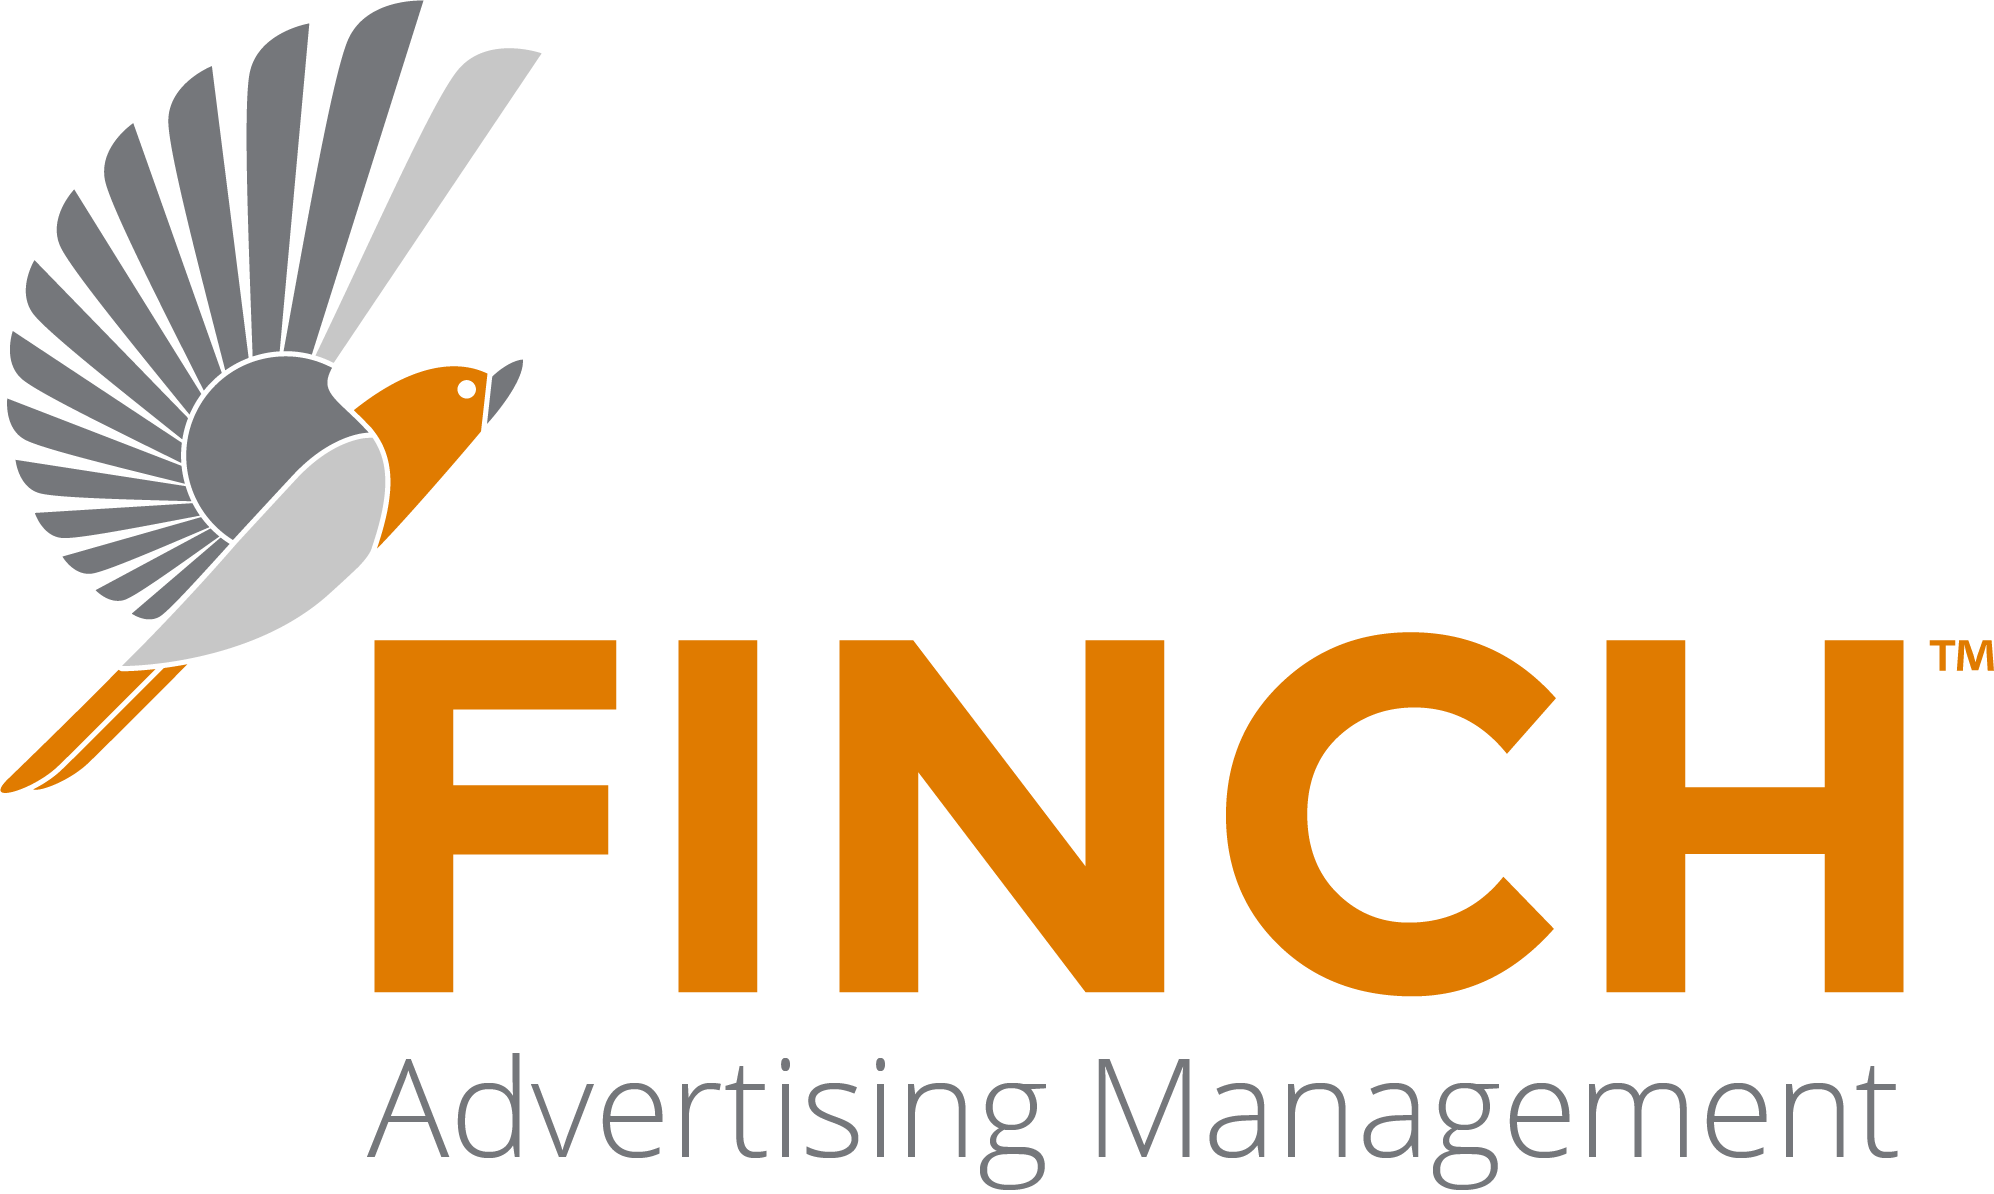 FINCH_logo_2020_primary_advmgmt-1